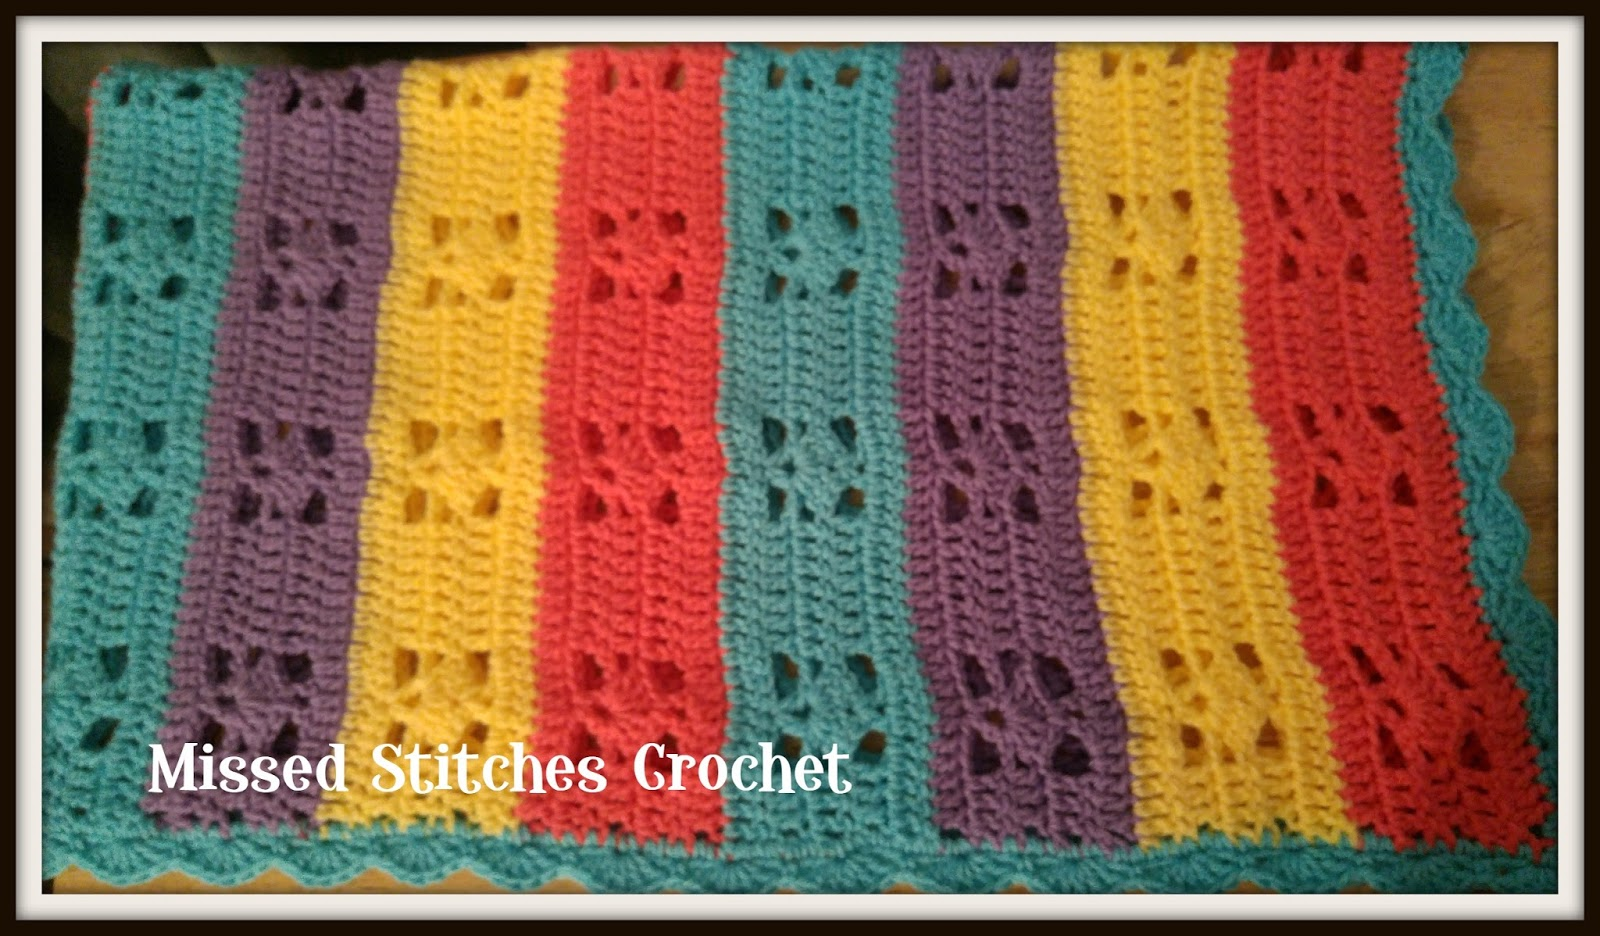 Missed stitches crochet april 2017 i did an even amount of single crochets around the edges trying to keep it at a multiple of 6 so i could add a shell border ccuart Images